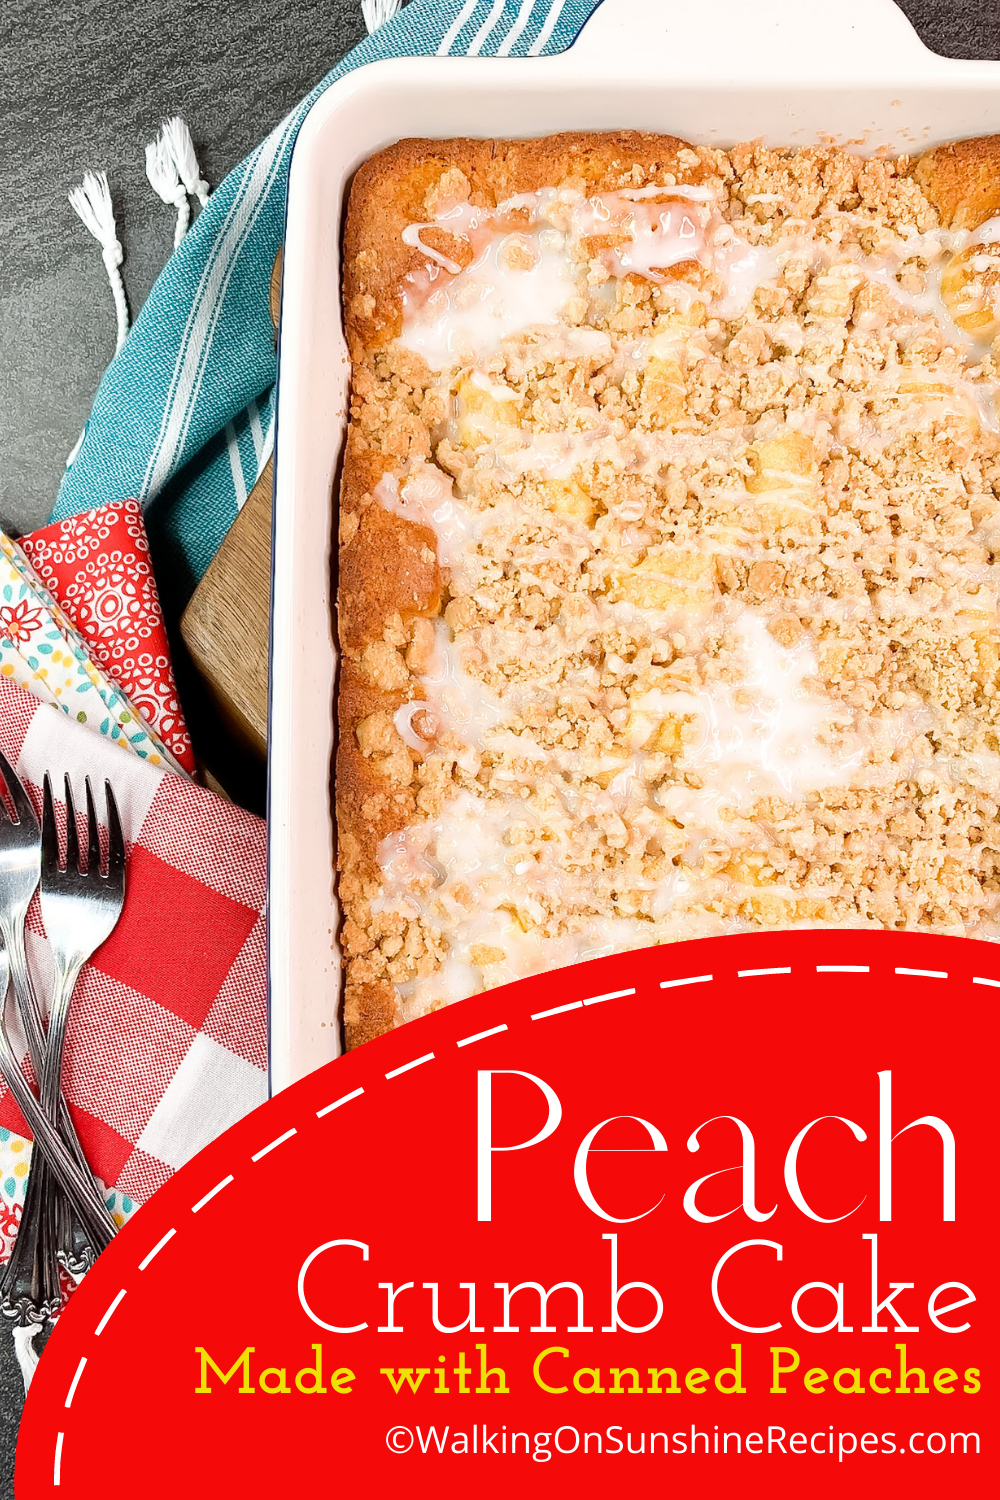 baked peach crumb cake with powdered sugar glaze in white baking dish.